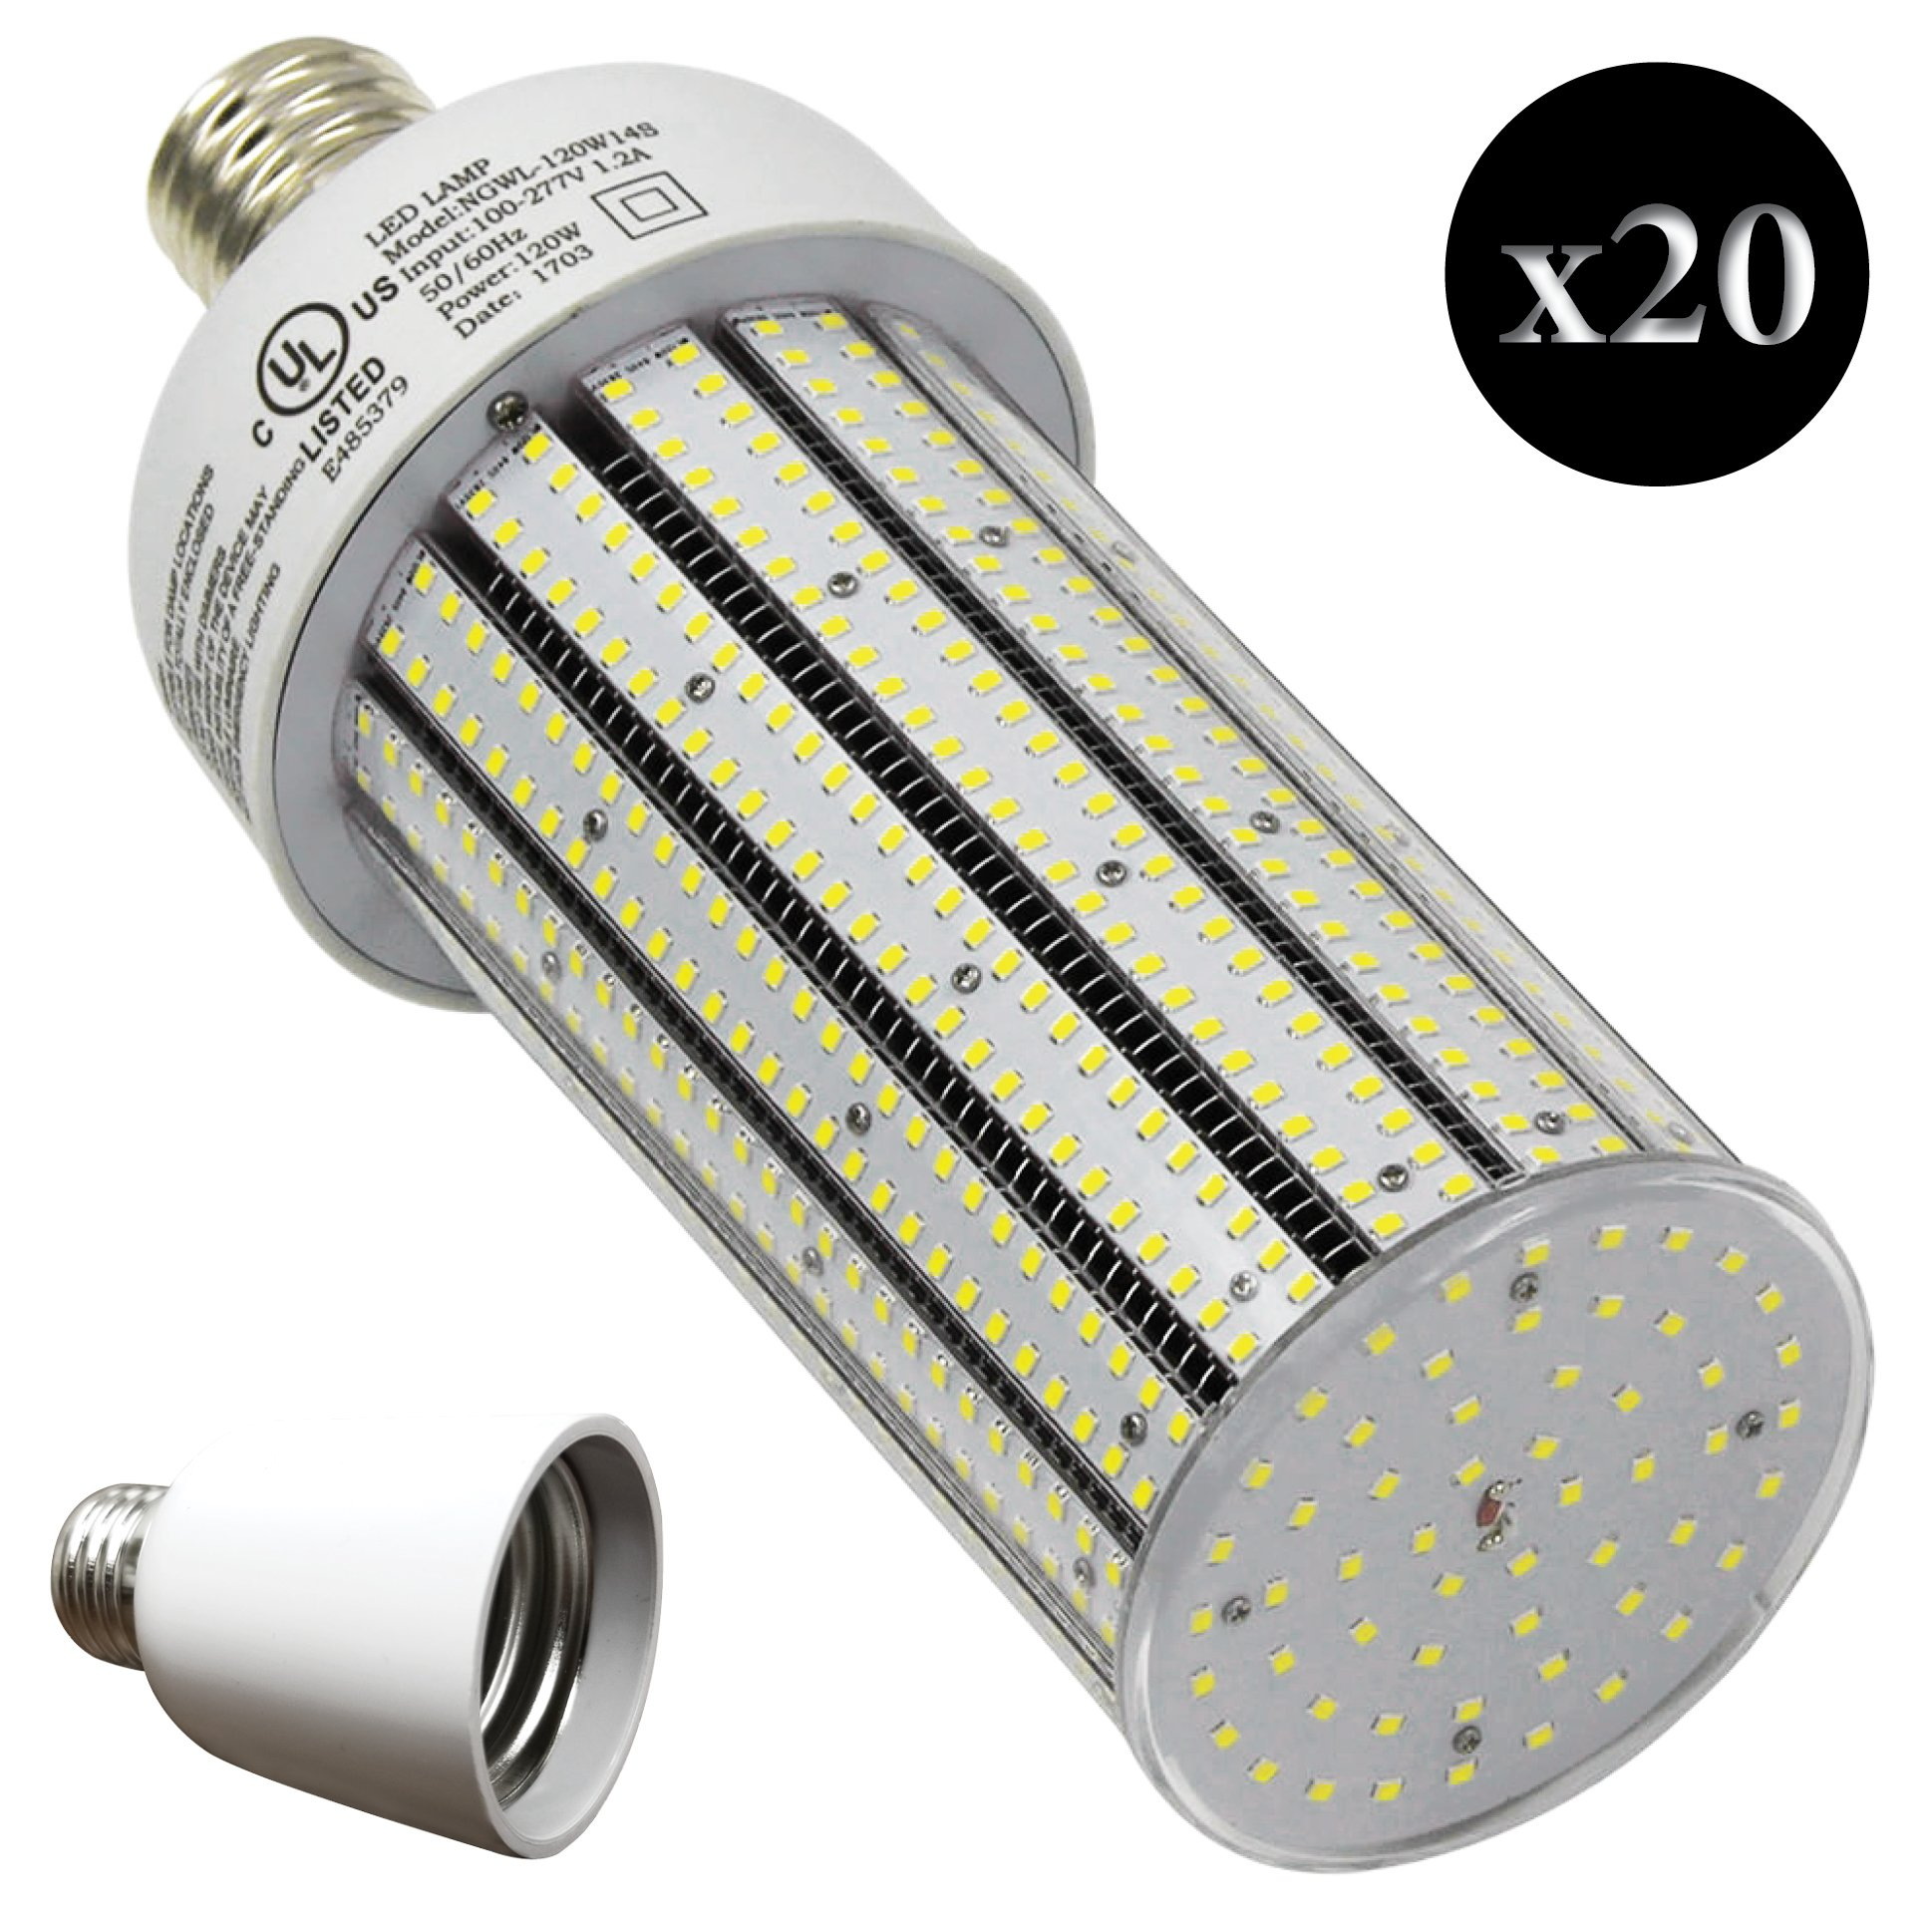 QTY 20 CC120-39 + 20 Adapters LED HIGH BAY SPORTS ARENA POST LED LIGHT E39 6500K WHITE 120W (EQUIVALENT TO 720W)